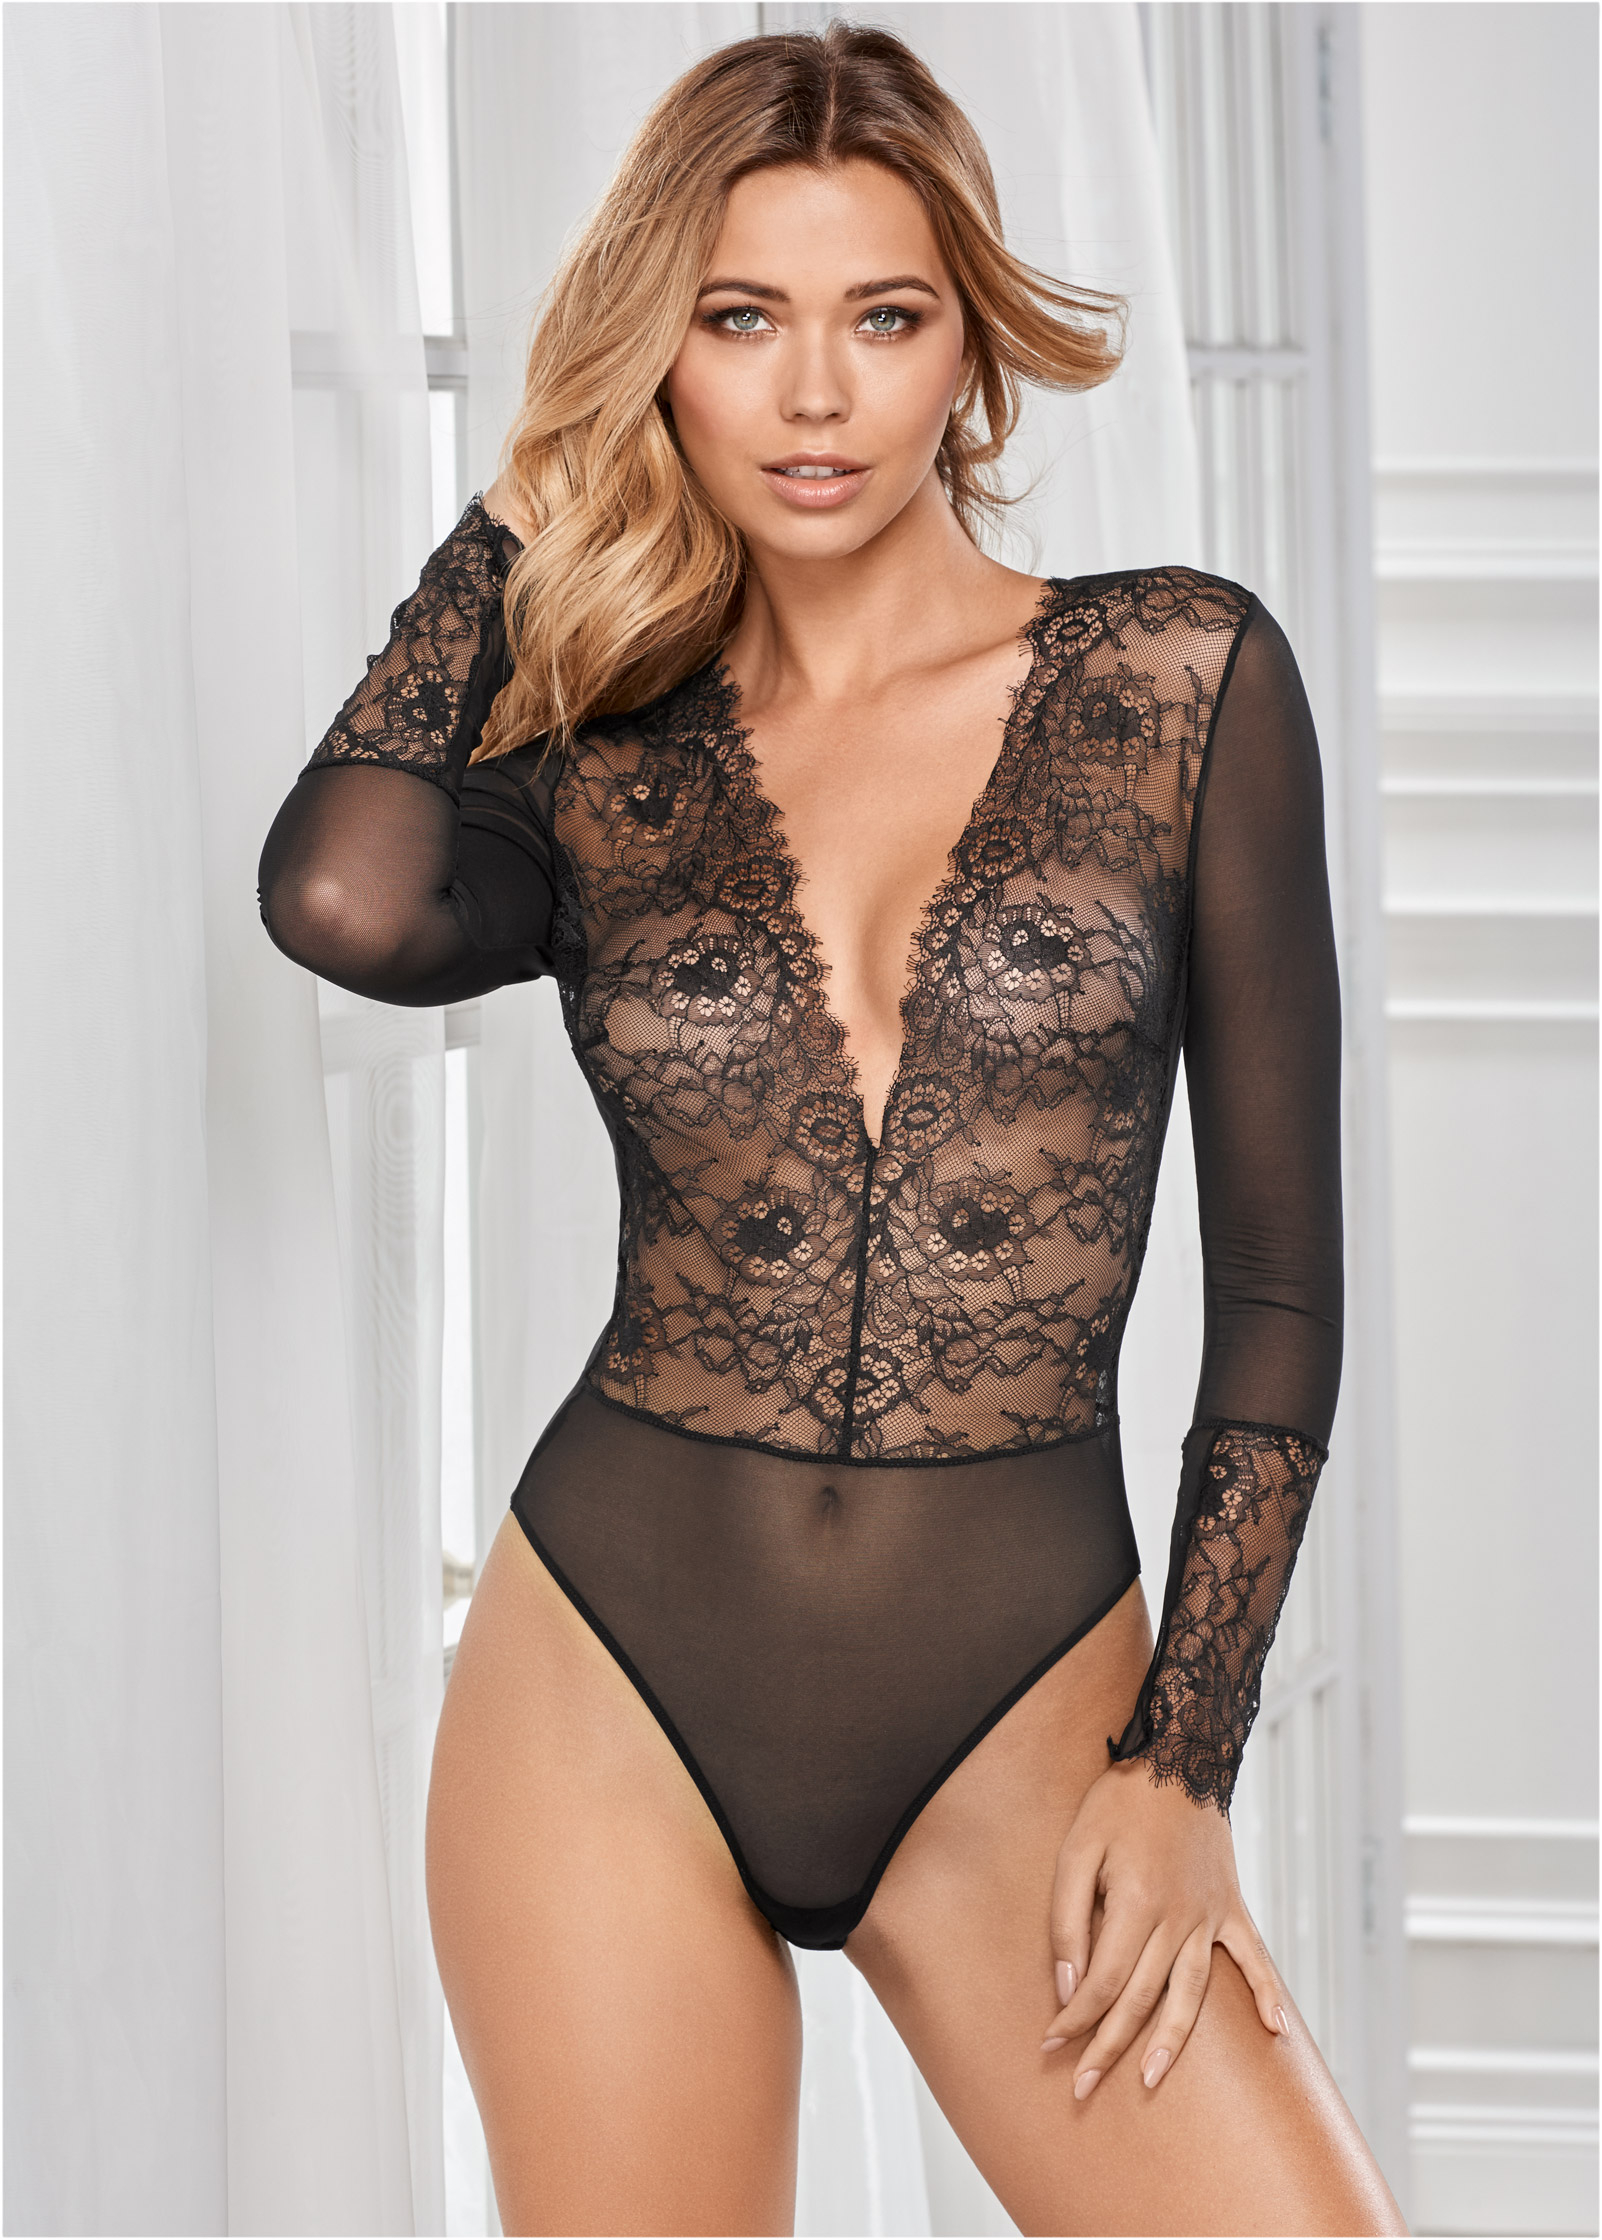 Where to find sexy lingerie